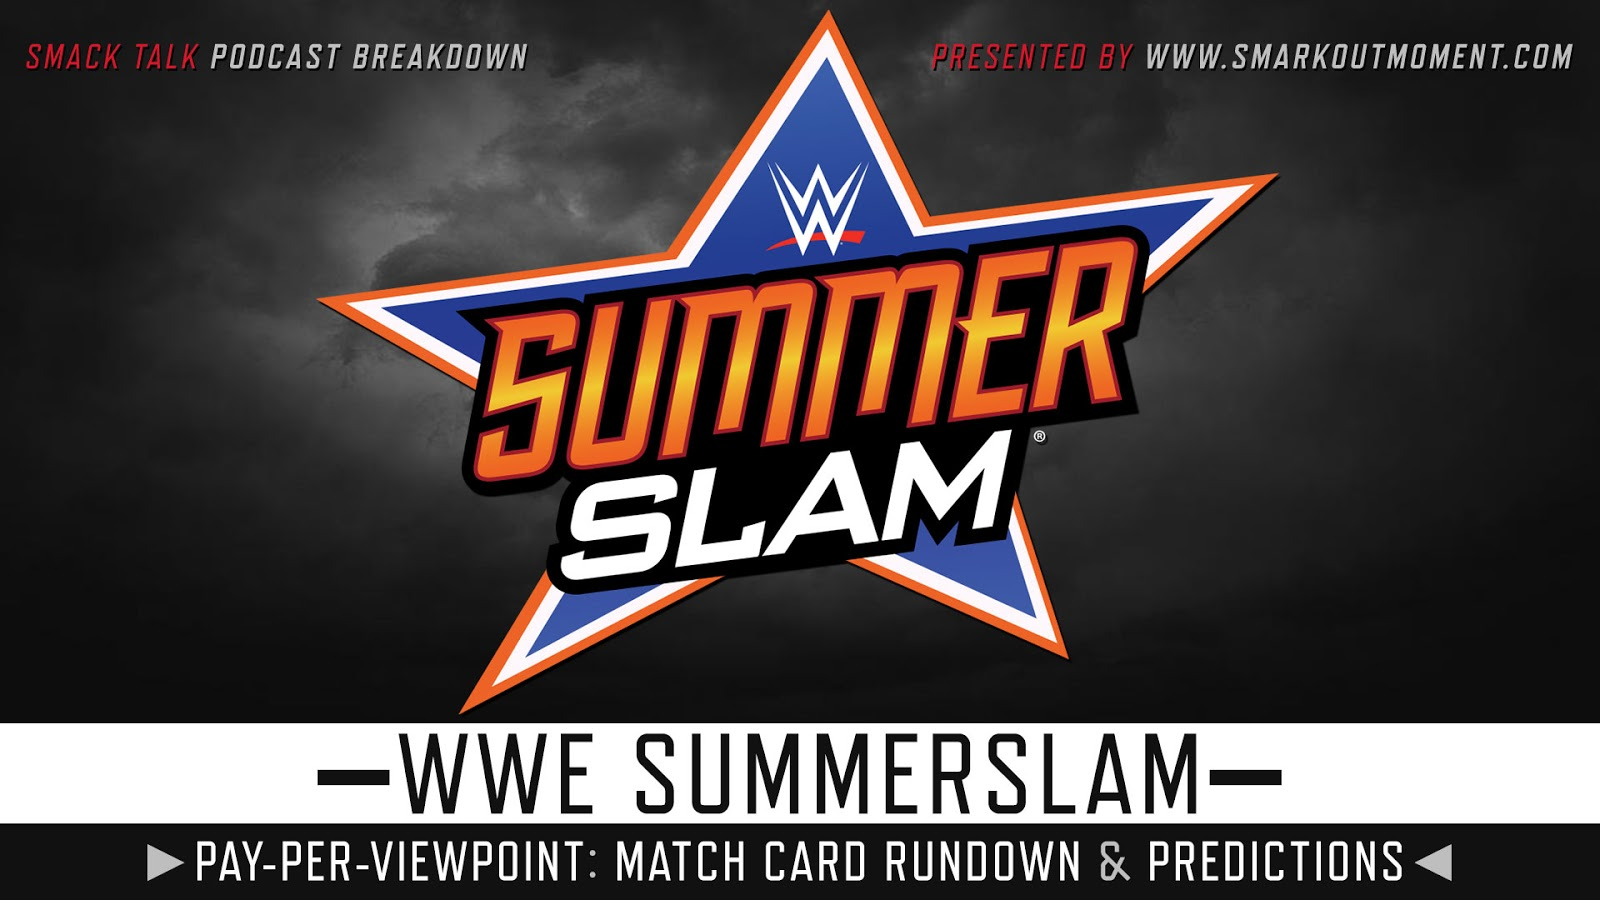 WWE SummerSlam 2019 spoilers podcast